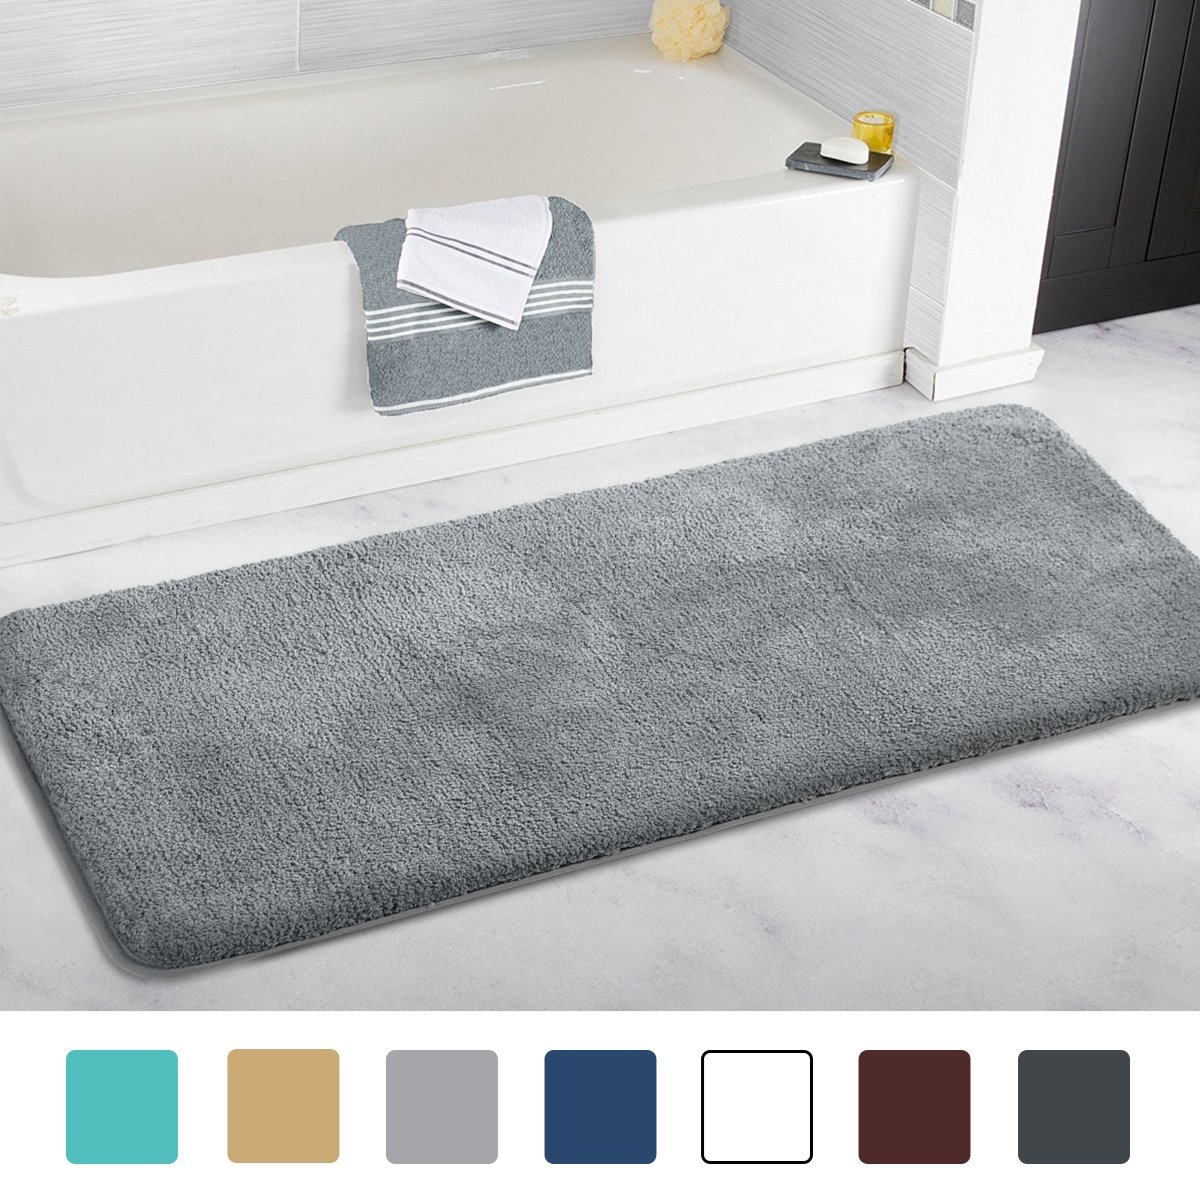 MAYSHINE Bath mat Runner for Bathroom Rugs,Long Floor mats,Extra Soft, Absorbent, Densely Woven Shaggy Microfiber,Machine-Washable, Perfect for Doormats,Tub, Shower(27.5X47 inch White) MS170266